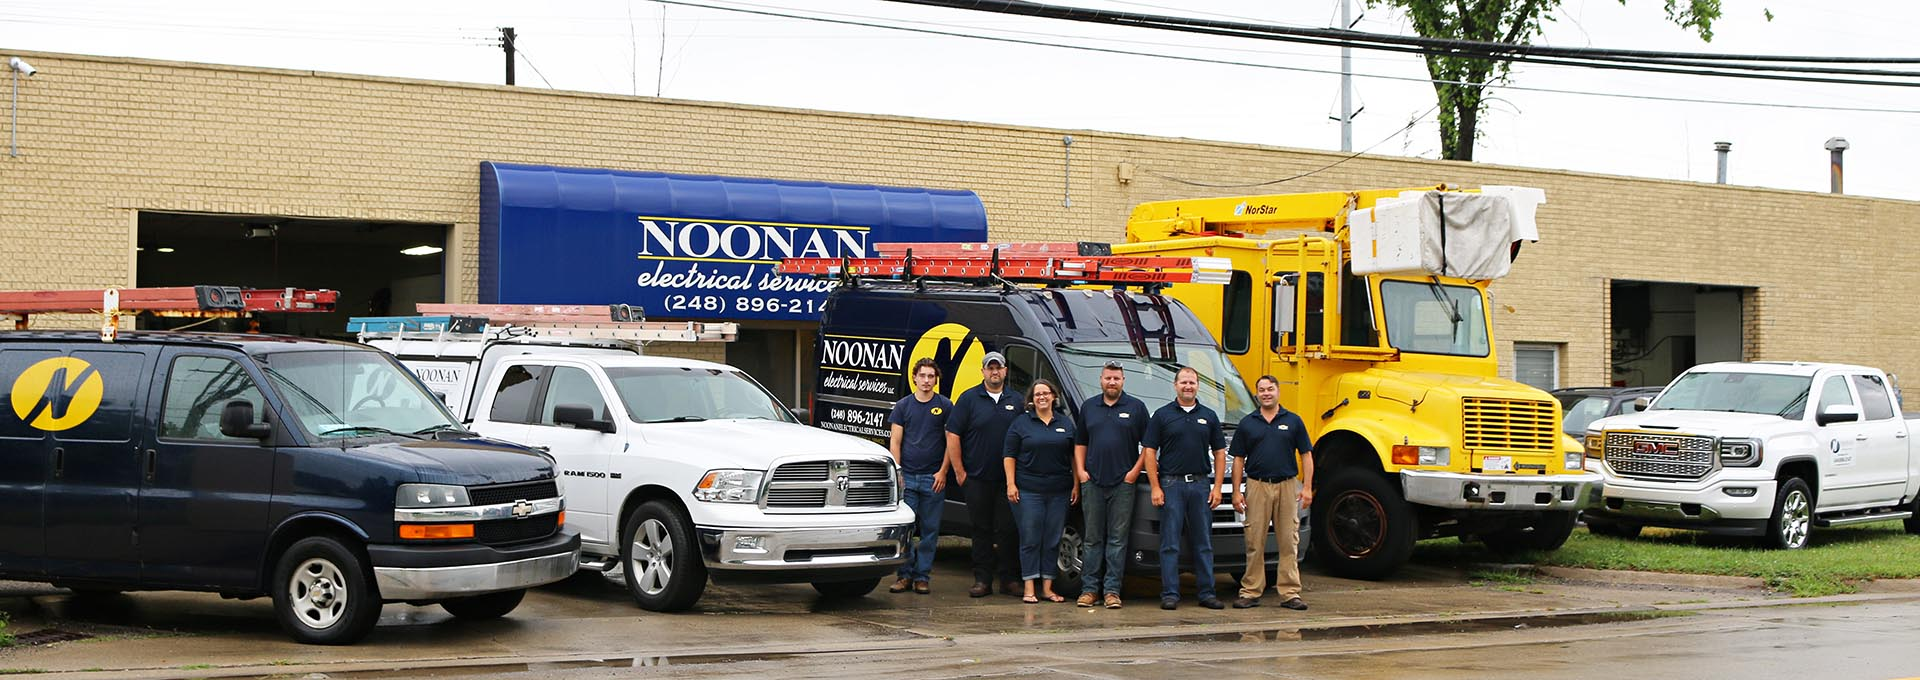 Noonan Electrical